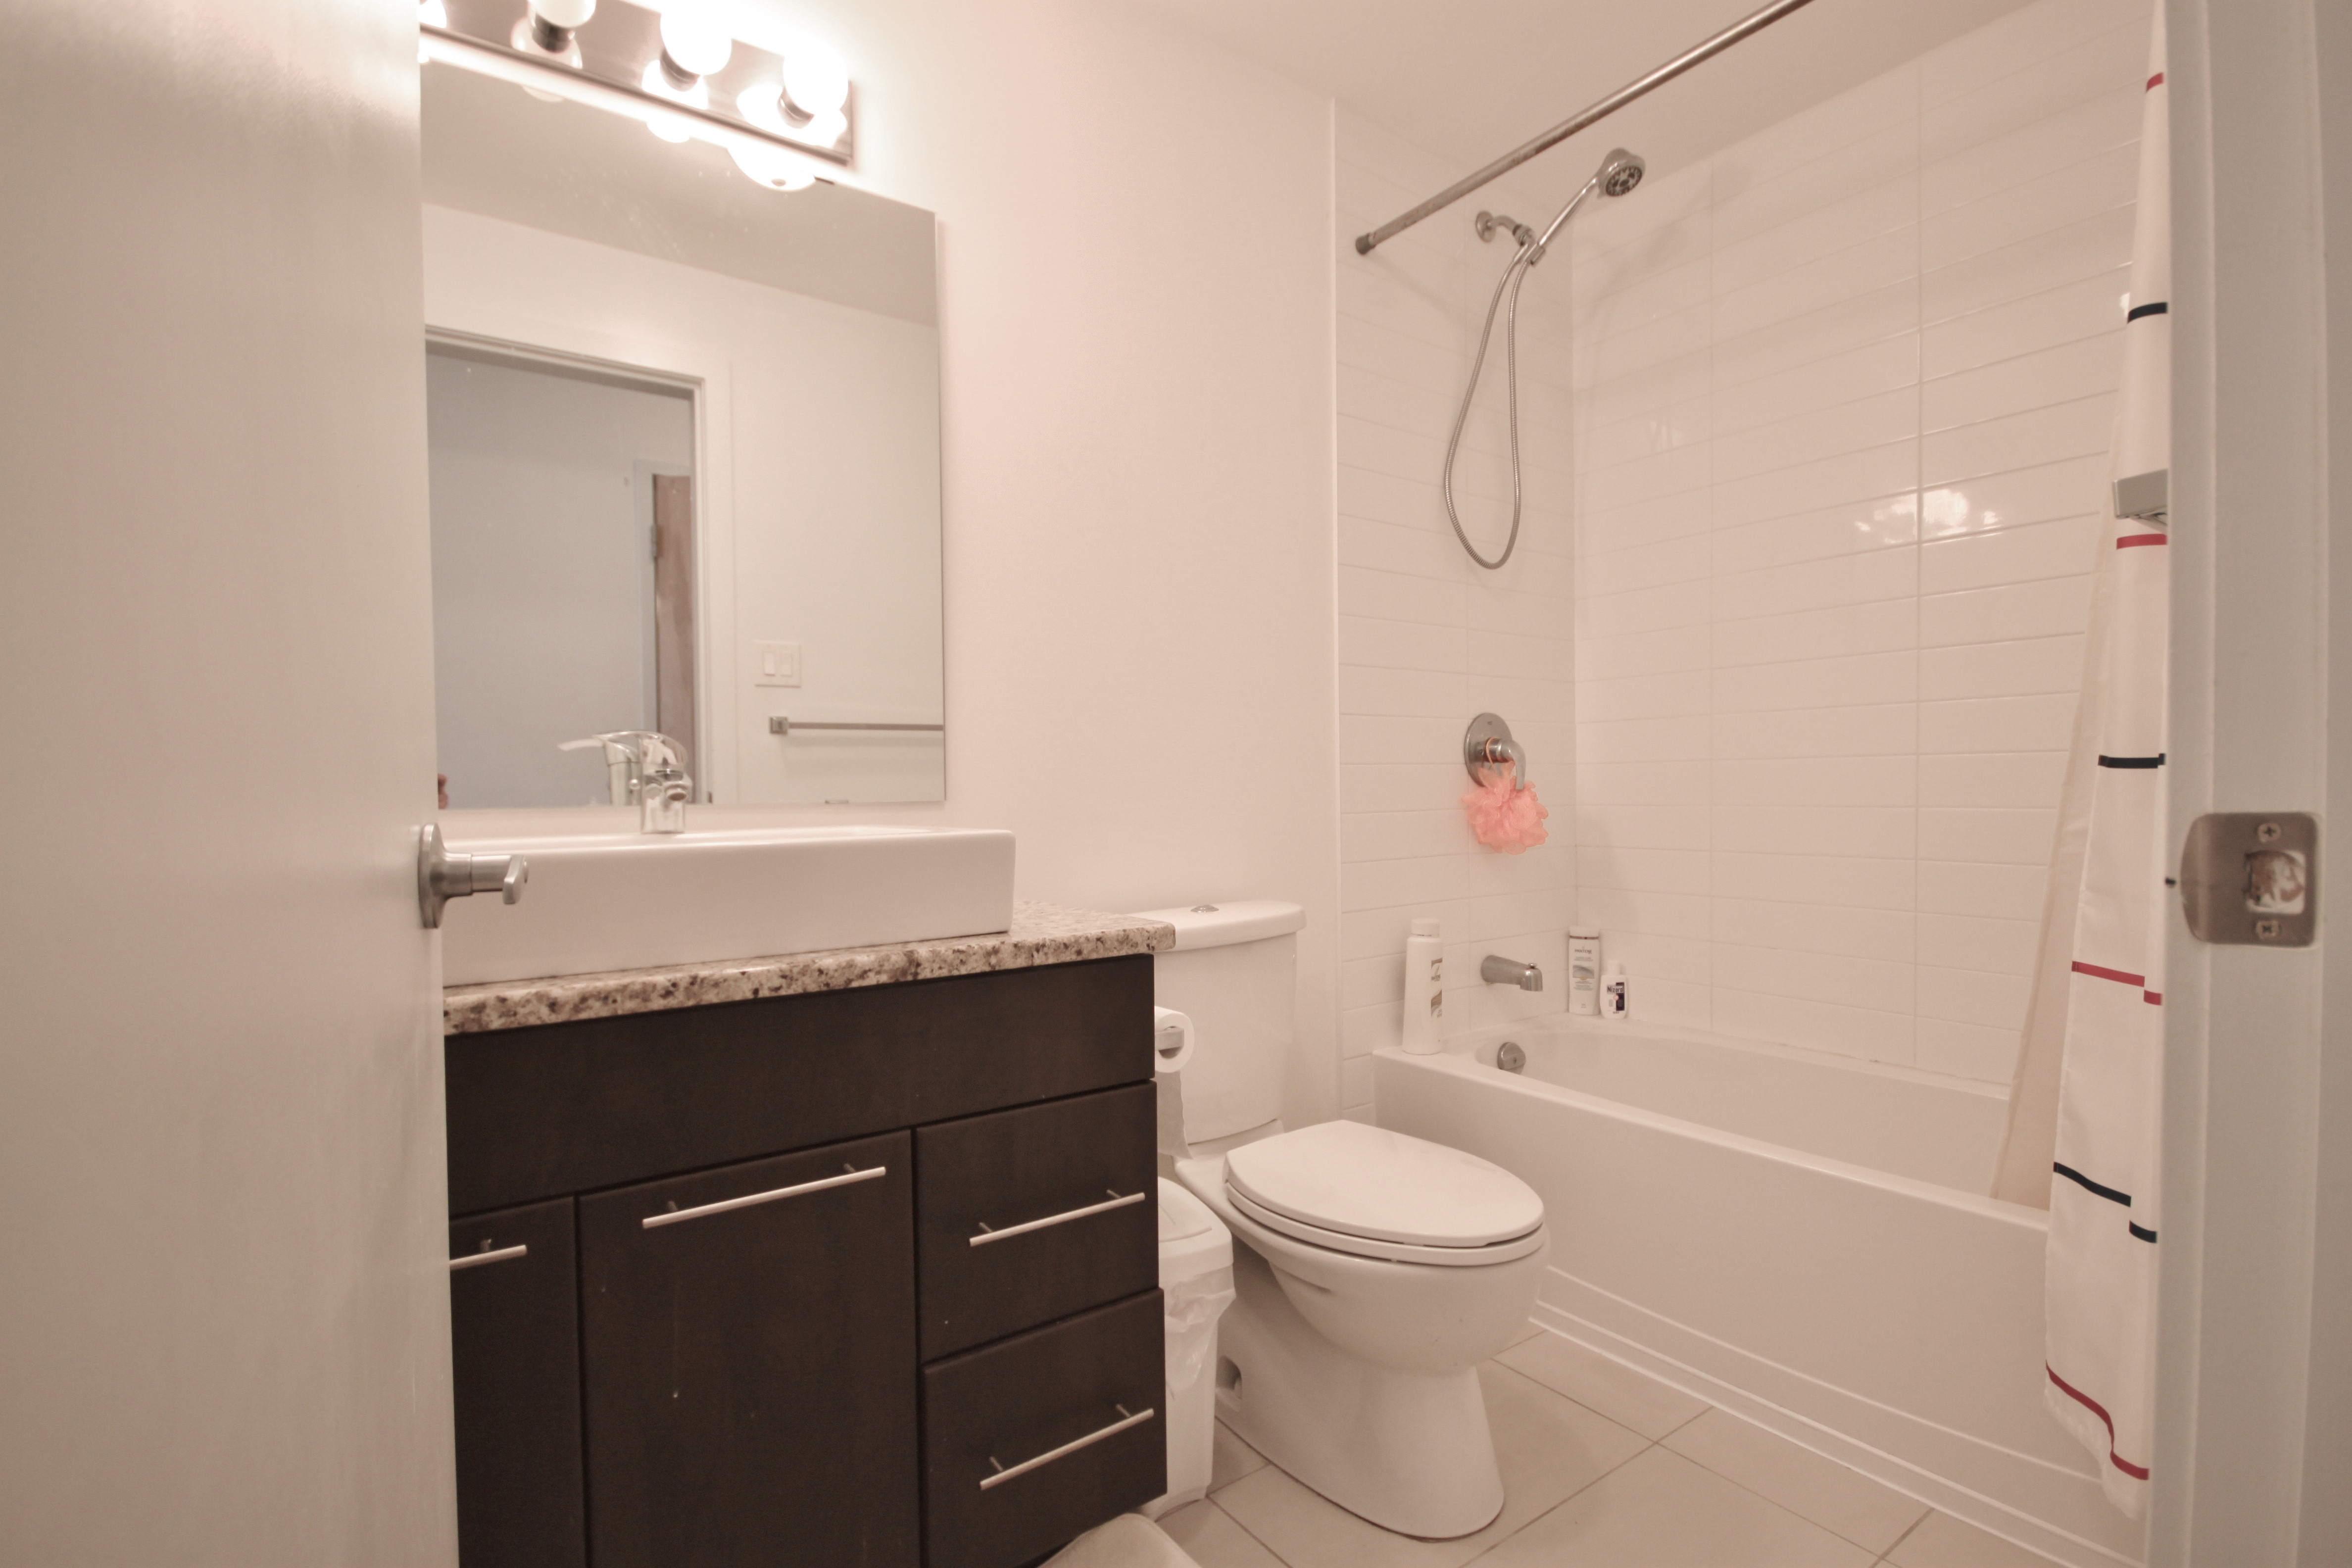 Beautiful bathroom with lots of storage space, ceramic tiled flooring, tiled shower with tub.